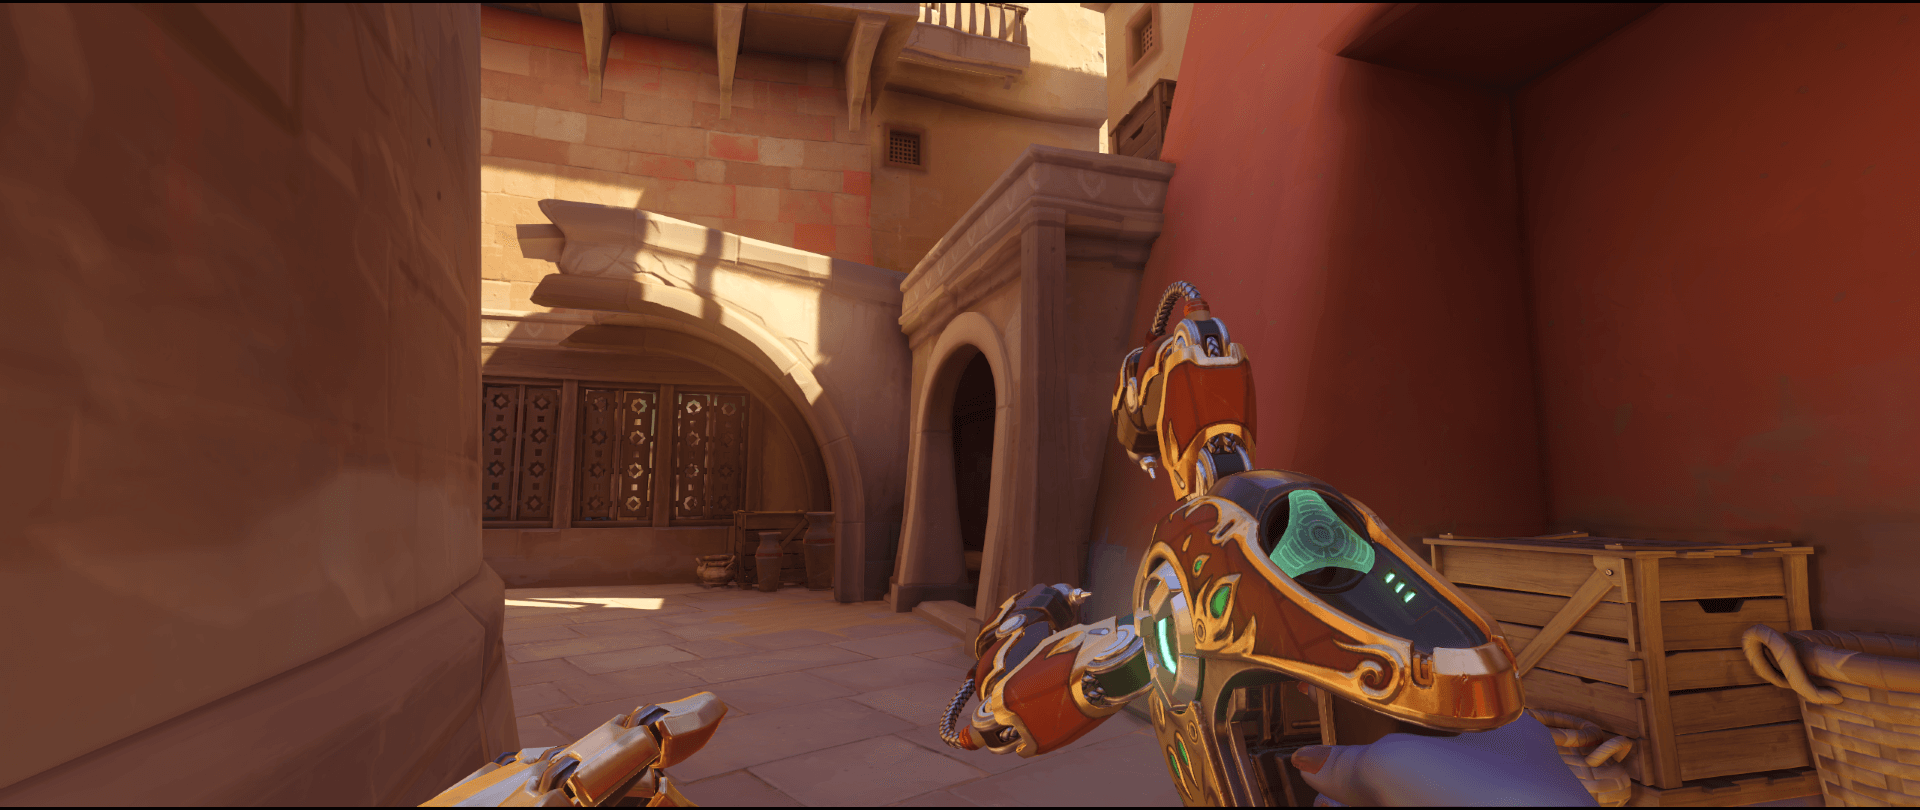 Symmetra shield generator spot Temple of Anubis room classic point one 1.png